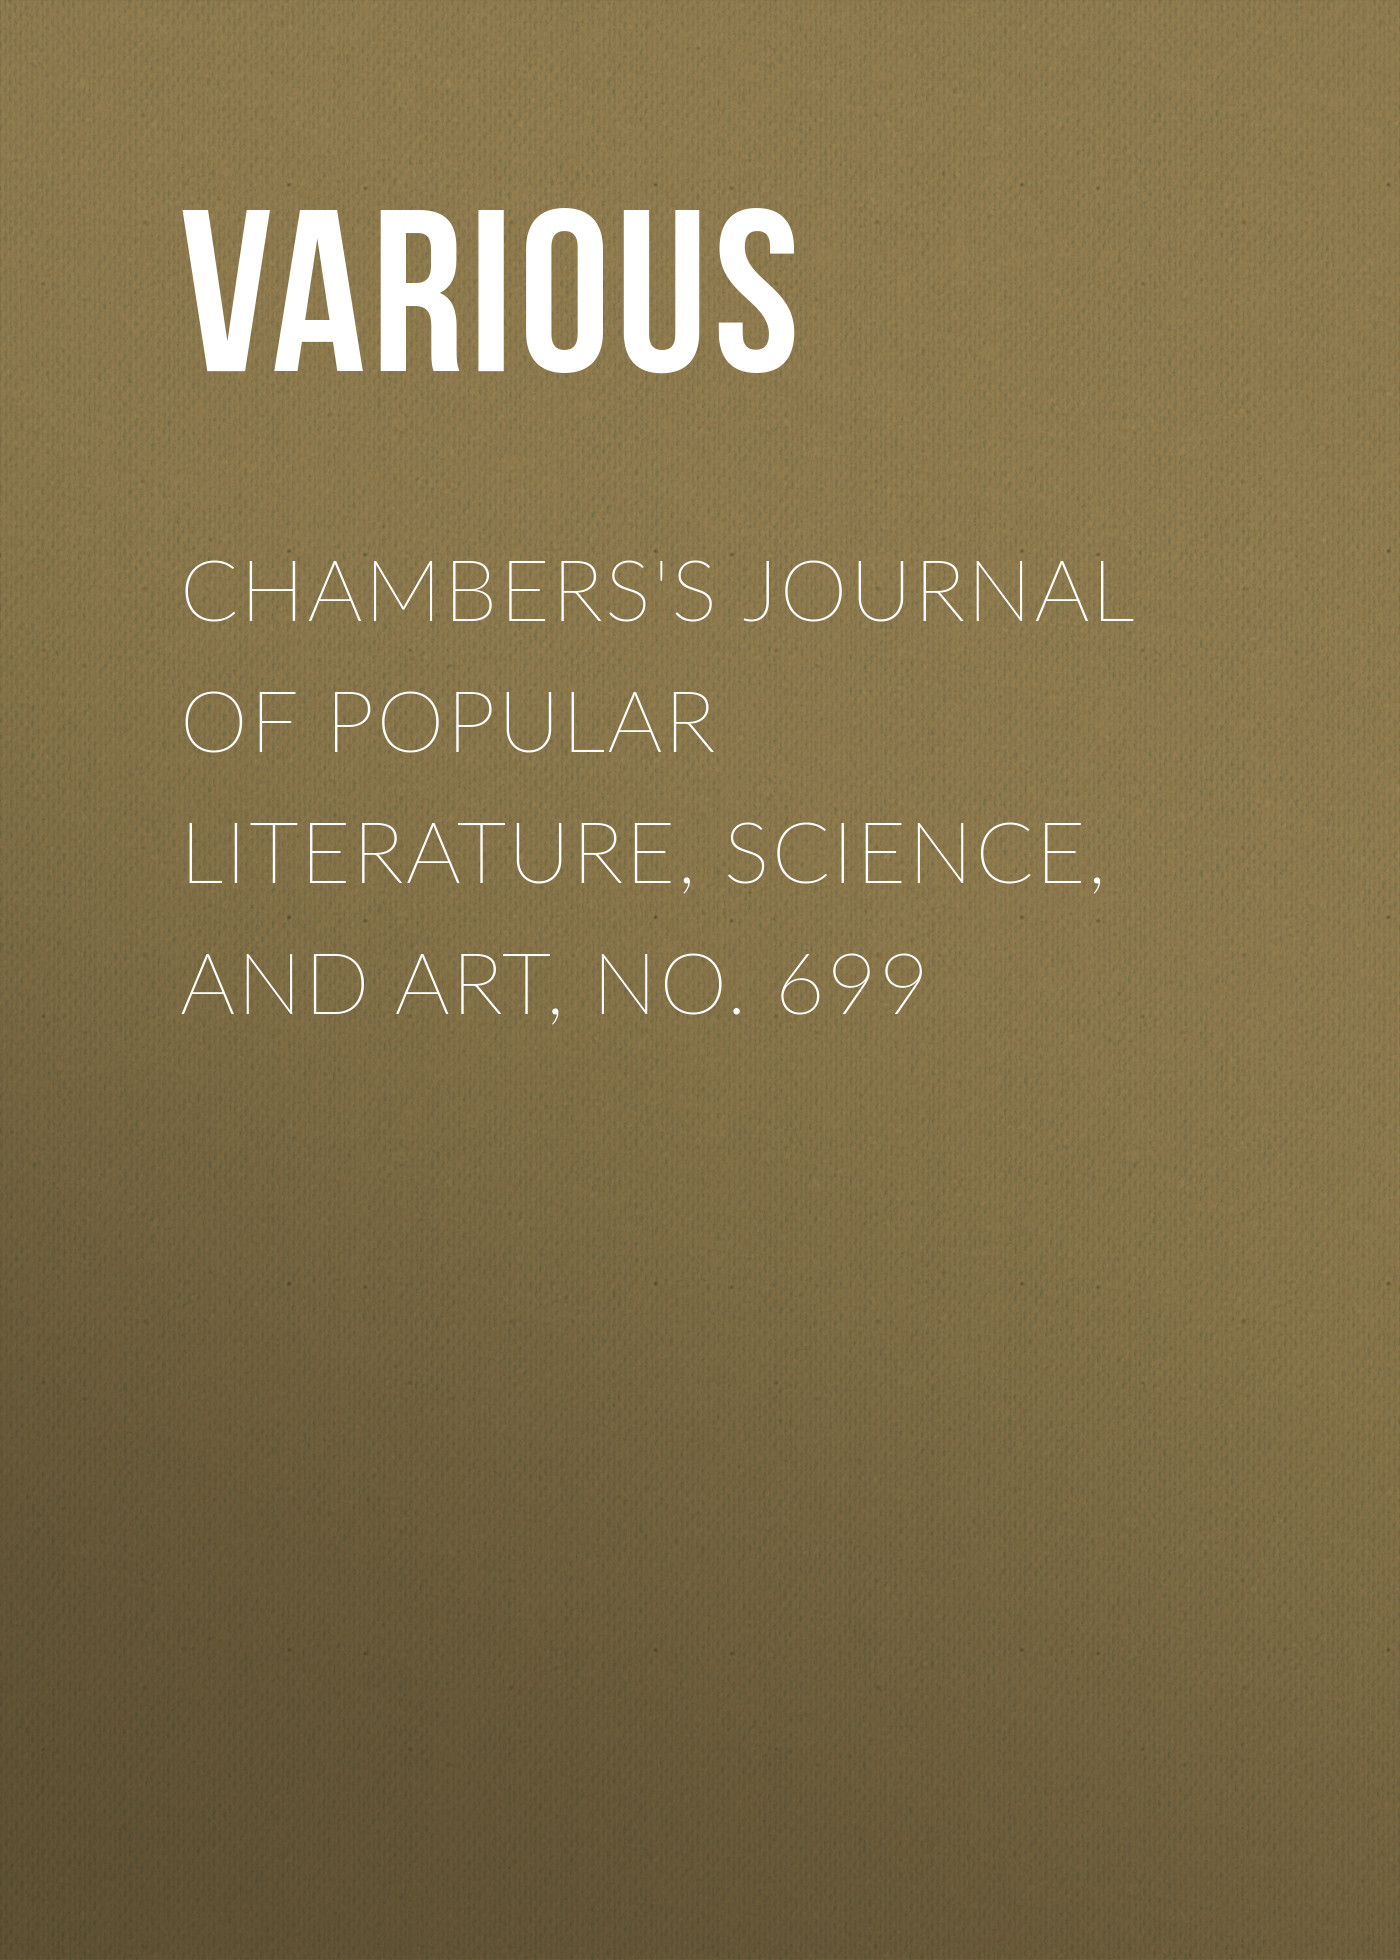 Chambers's Journal of Popular Literature, Science, and Art, No. 699 фото